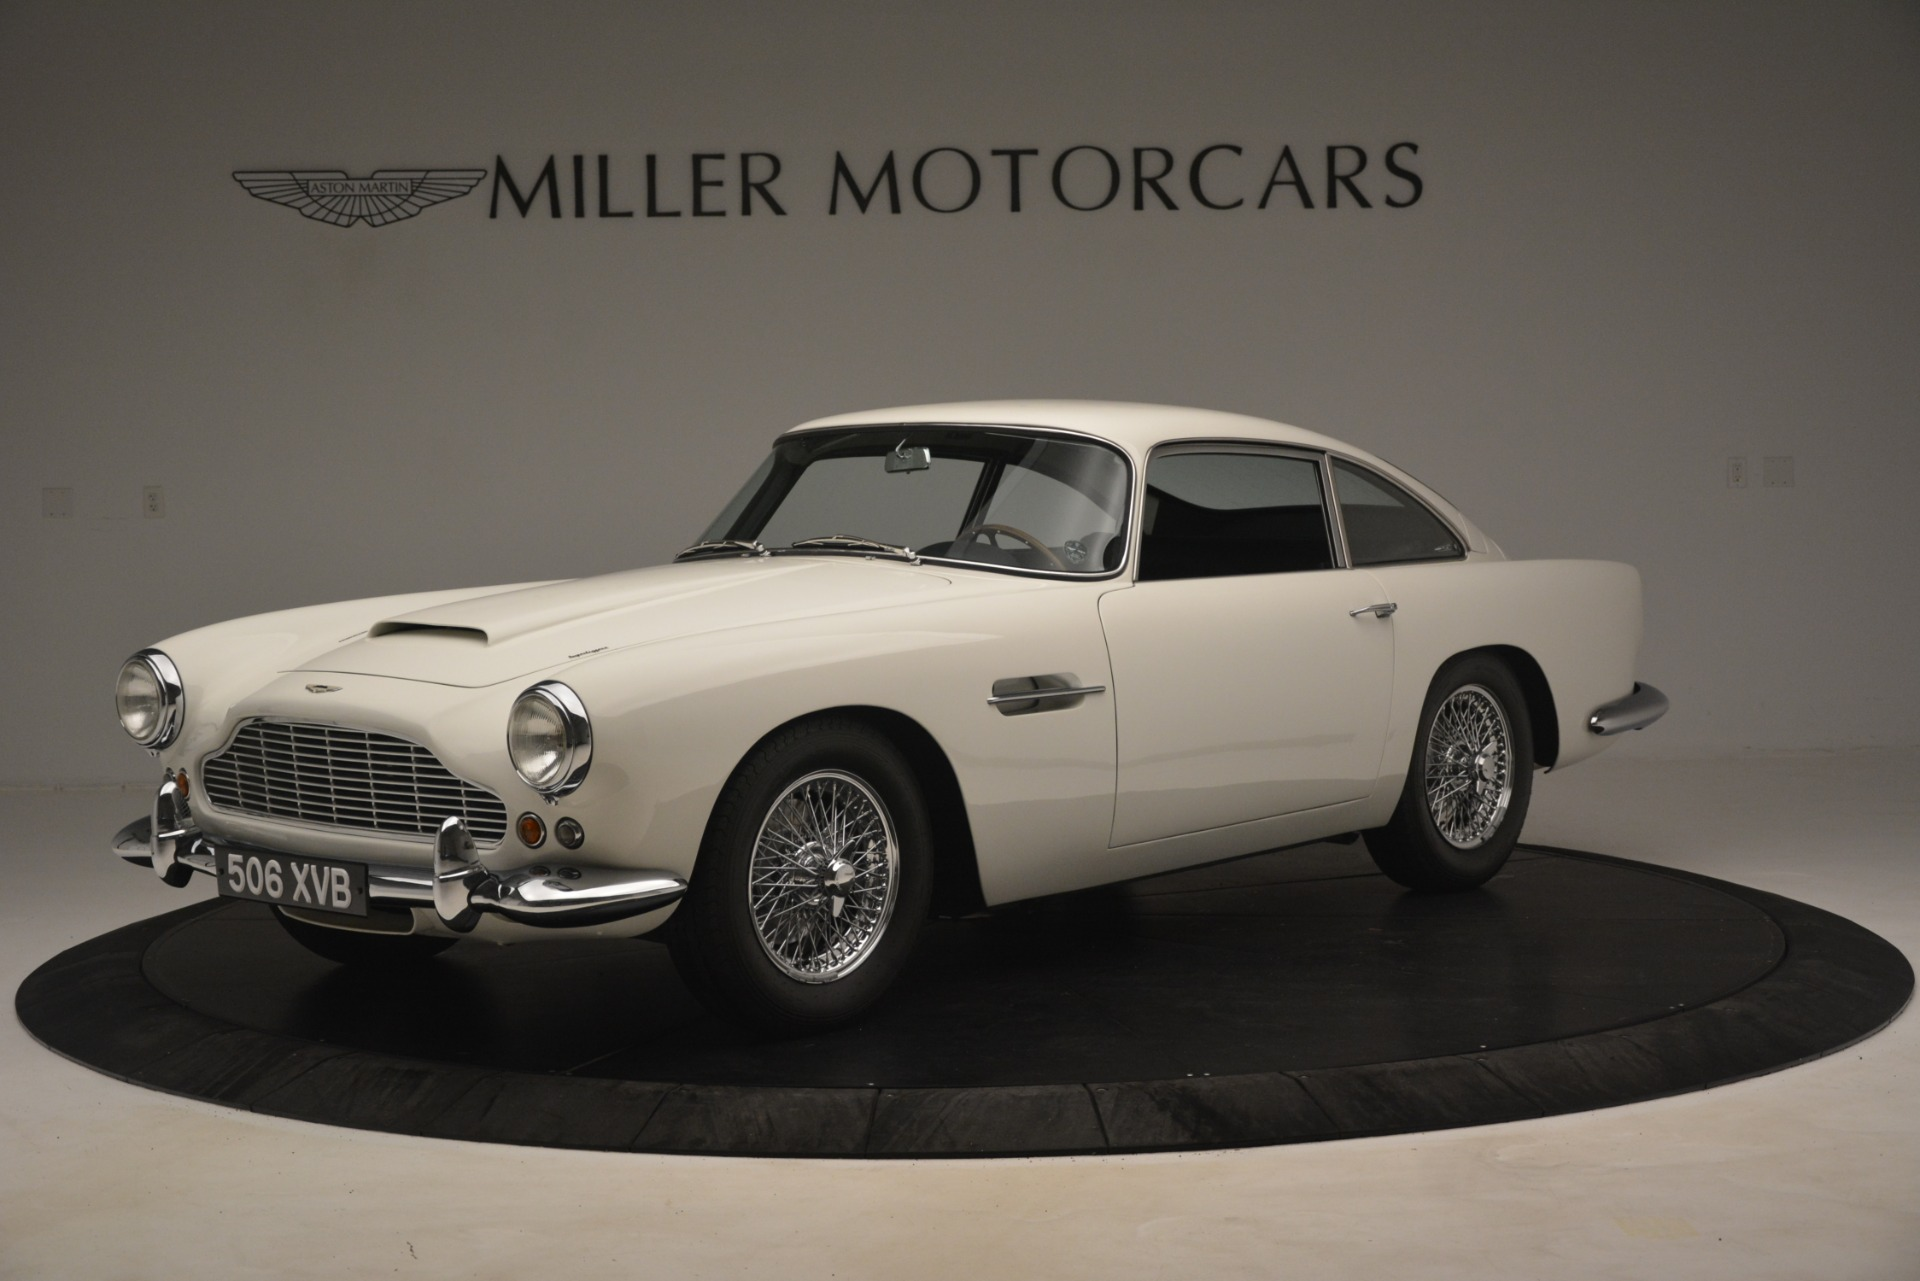 Used 1961 Aston Martin DB4 Series IV Coupe for sale $625,900 at Alfa Romeo of Greenwich in Greenwich CT 06830 1